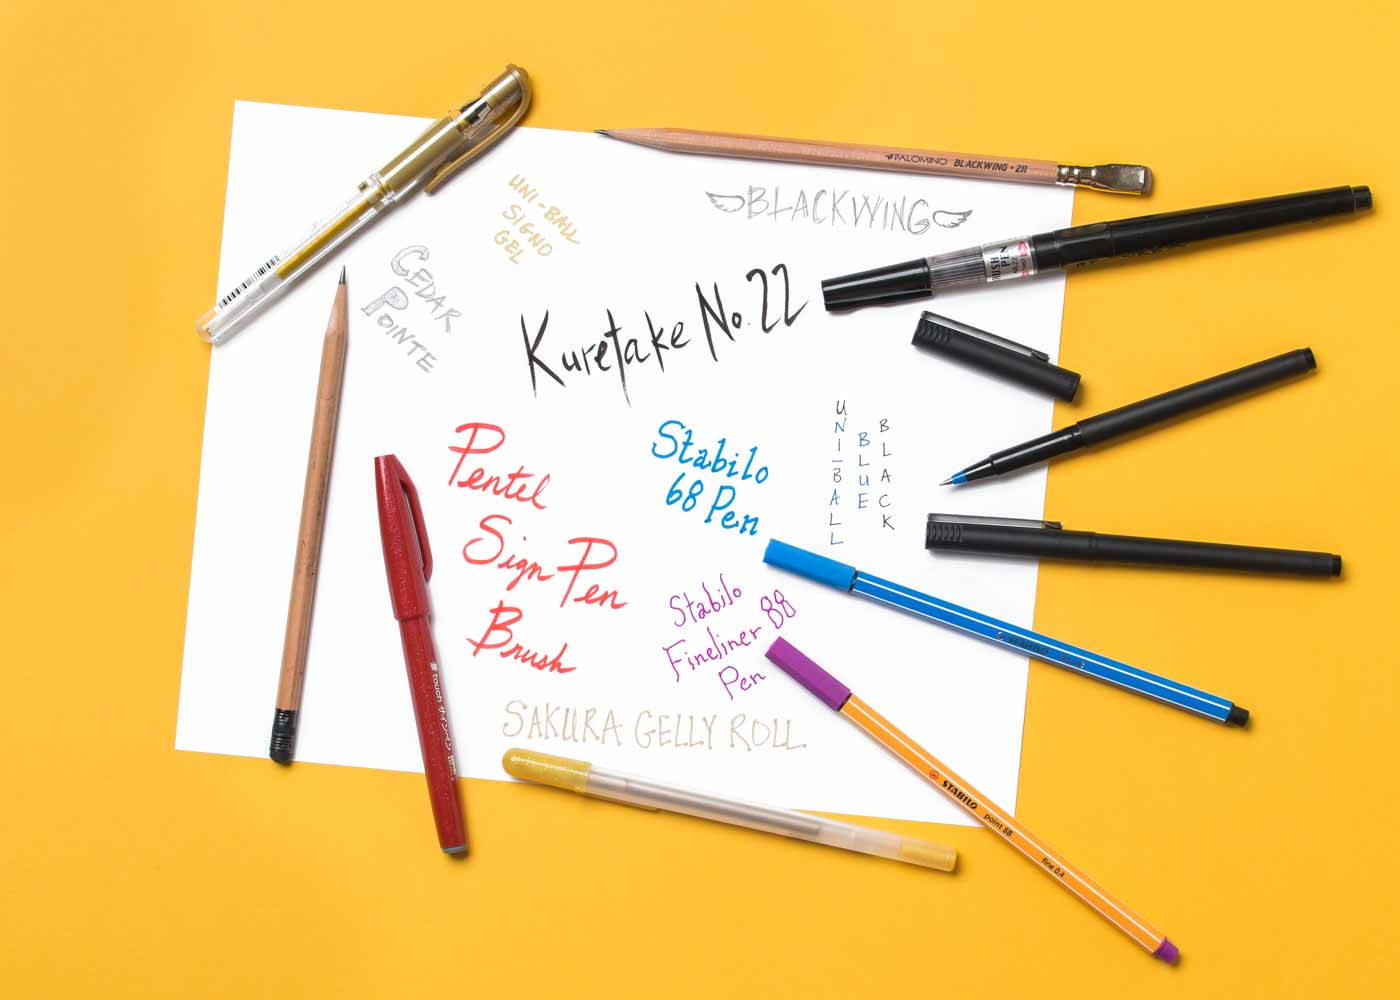 A writing sampler for some of our all-time favorite pens and pencils.